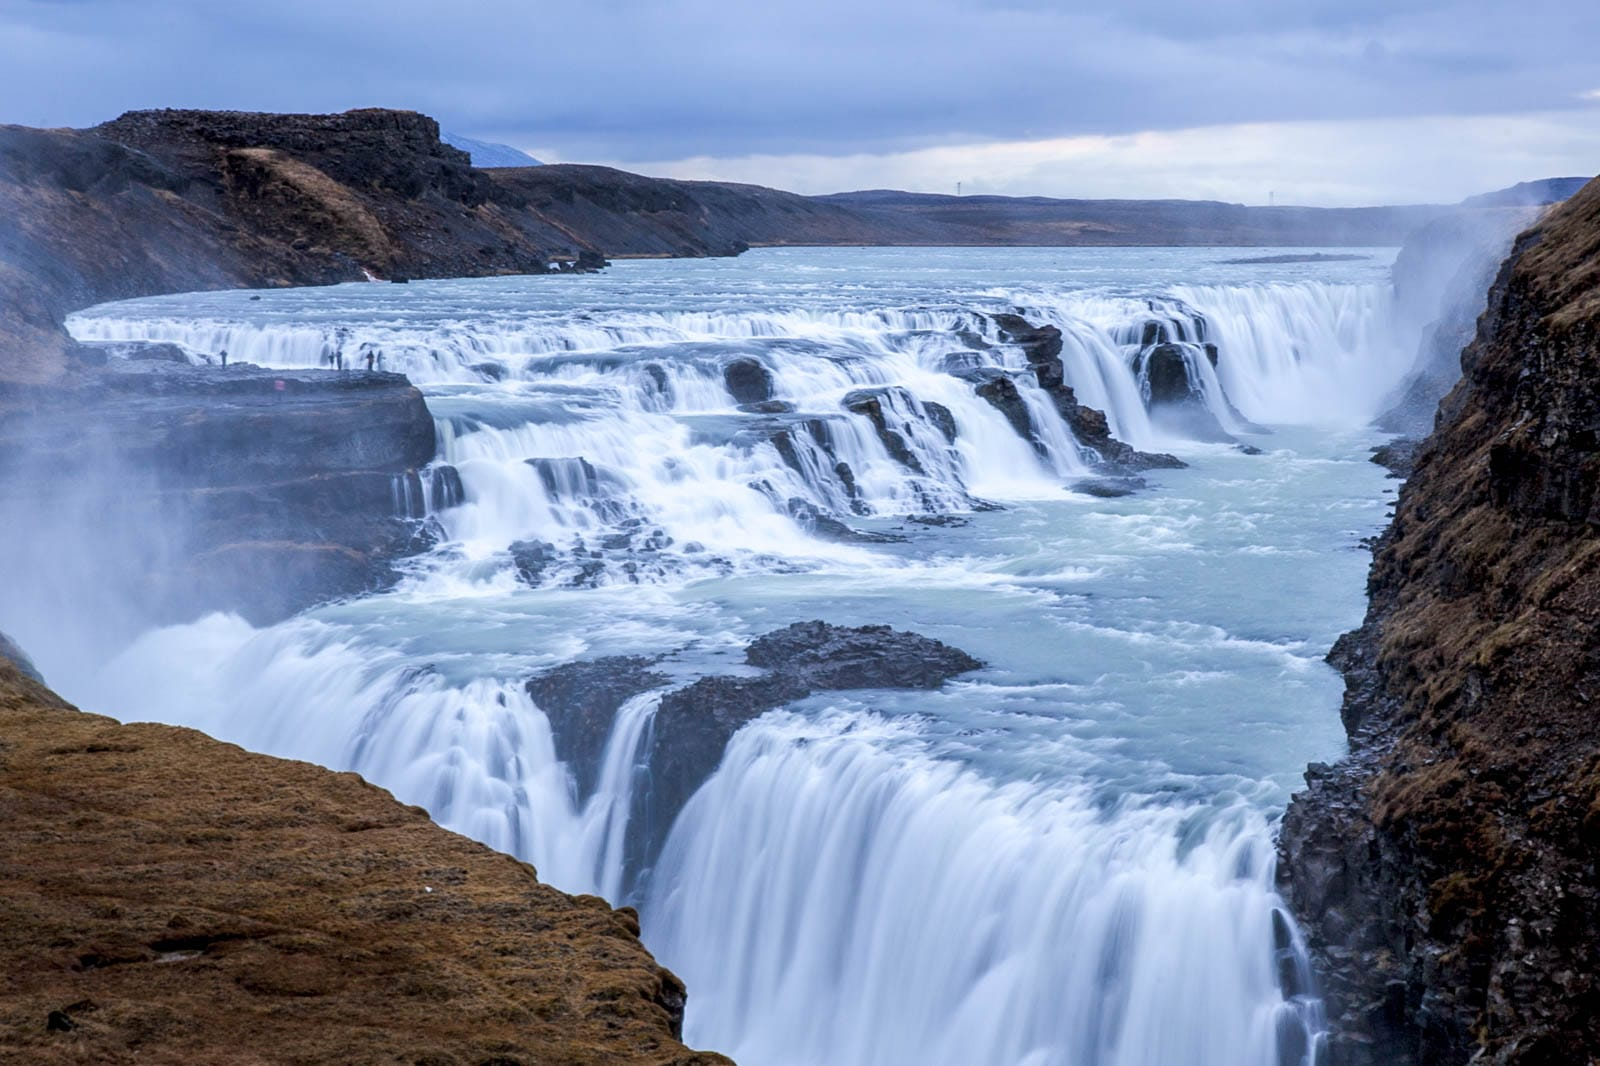 The majestic Gullfoss waterfall